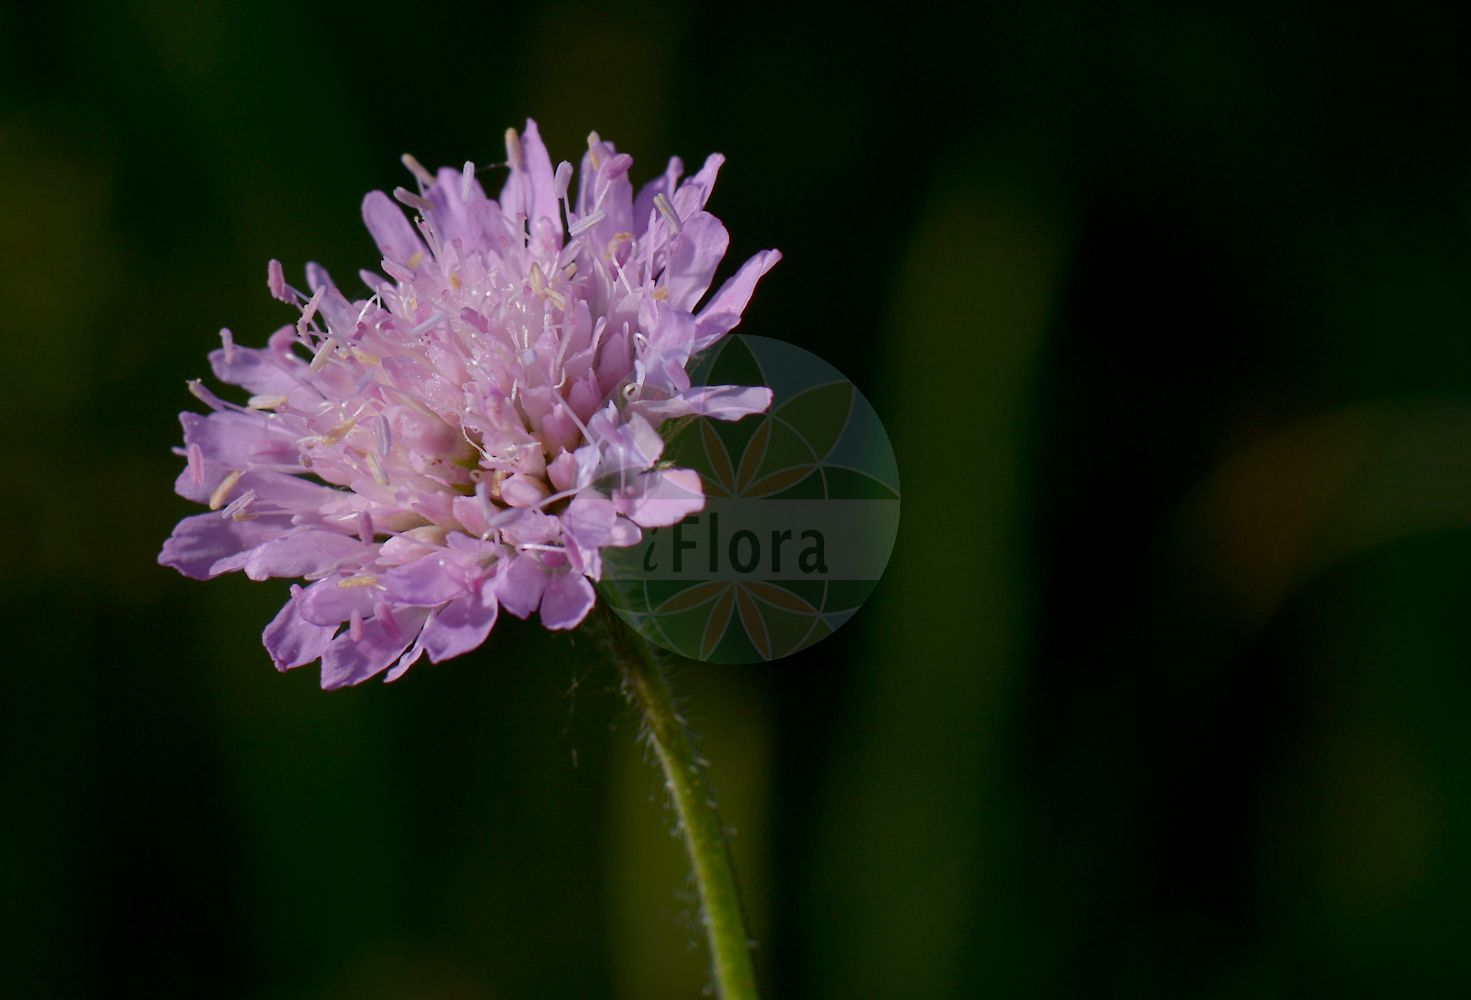 Foto von Knautia arvensis (Wiesen-Witwenblume - Field Scabious). Das Bild zeigt Bluete. Das Foto wurde in Leeheim, Riedstadt, Gross-Gerau, Hessen, Deutschland, Oberrheinisches Tiefland und Rhein-Main-Ebene aufgenommen. ---- Photo of Knautia arvensis (Wiesen-Witwenblume - Field Scabious).The image is showing flower.The picture was taken in Leeheim, Riedstadt, Gross-Gerau, Hesse, Germany, Oberrheinisches Tiefland and Rhein-Main-Ebene.(Knautia arvensis,Wiesen-Witwenblume,Field Scabious,Knautia avernica,Knautia boderei,Knautia borderei,Knautia catalaunica,Knautia timeroyi,Scabiosa arvensis,Scabiosa collina,Scabiosa dubia,Scabiosa polymorpha,Trichera arvensis,Trichera timeroyi,Kitaibels Witwenblume,Field Scabiosa,Knautia,Witwenblume,Scabious,Caprifoliaceae,Geissblattgewaechse,Honeysuckle family,Bluete,flower)